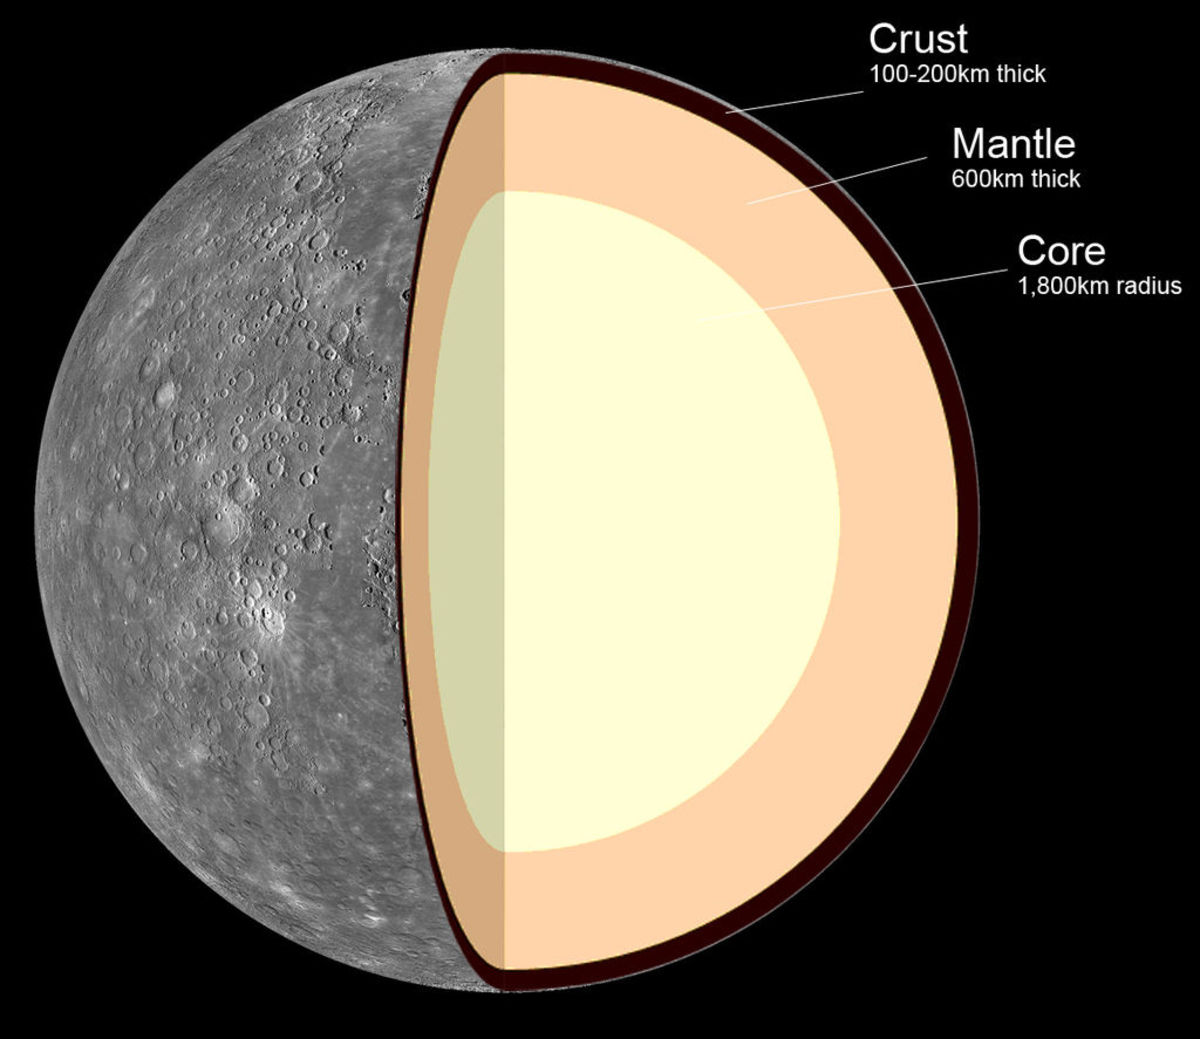 Internal structure of the planet Mercury. Notice its exceptionally large core that dominates much of its overall structure.